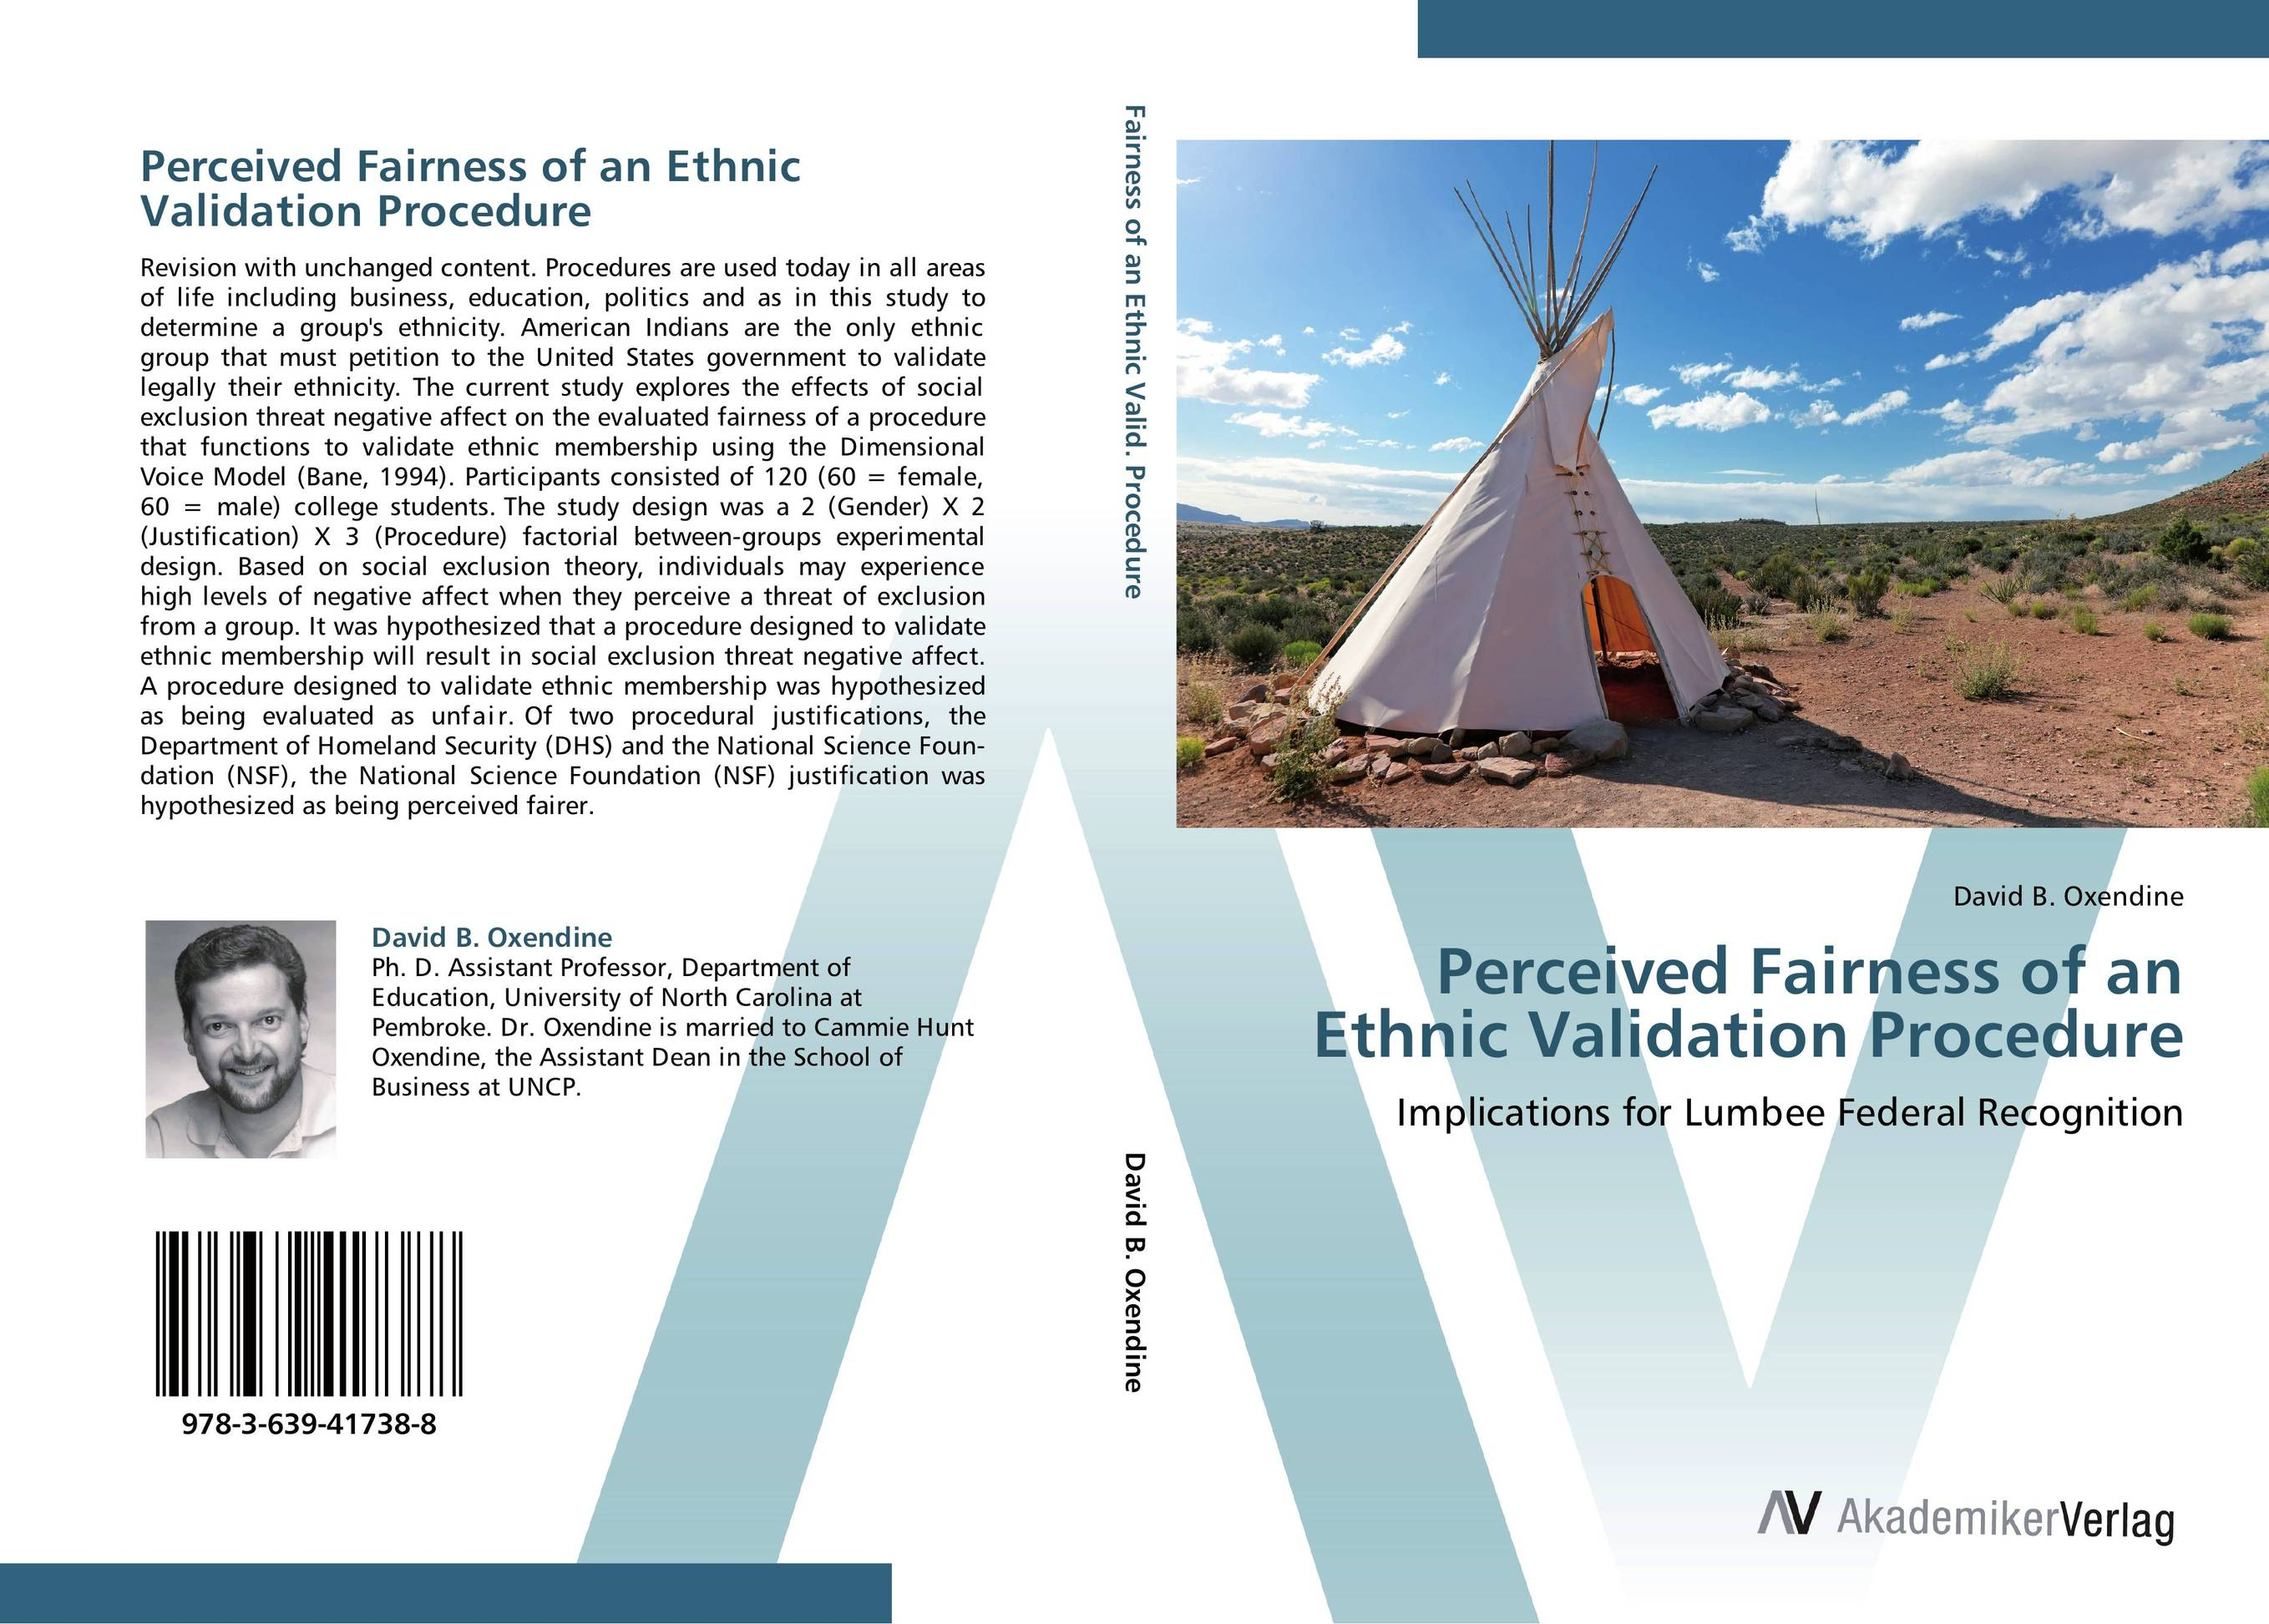 Perceived Fairness of an Ethnic Validation Procedure washington a maryland politicians threat to sue a 2